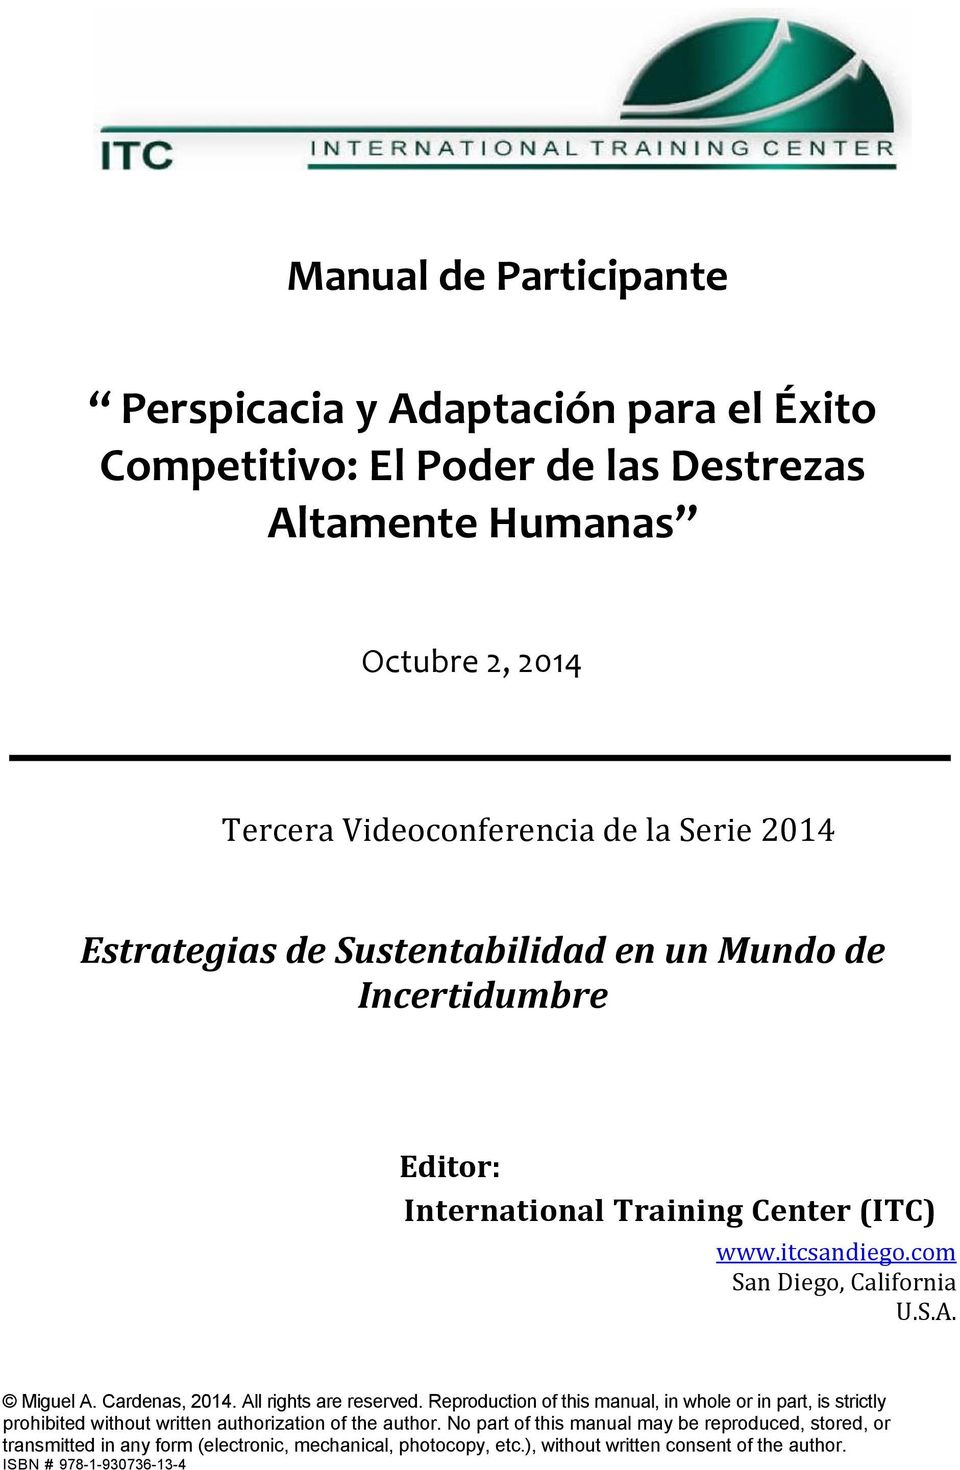 Miguel A. Cardenas, 2014. All rights are reserved. Reproduction of this manual, in whole or in part, is strictly prohibited without written authorization of the author.